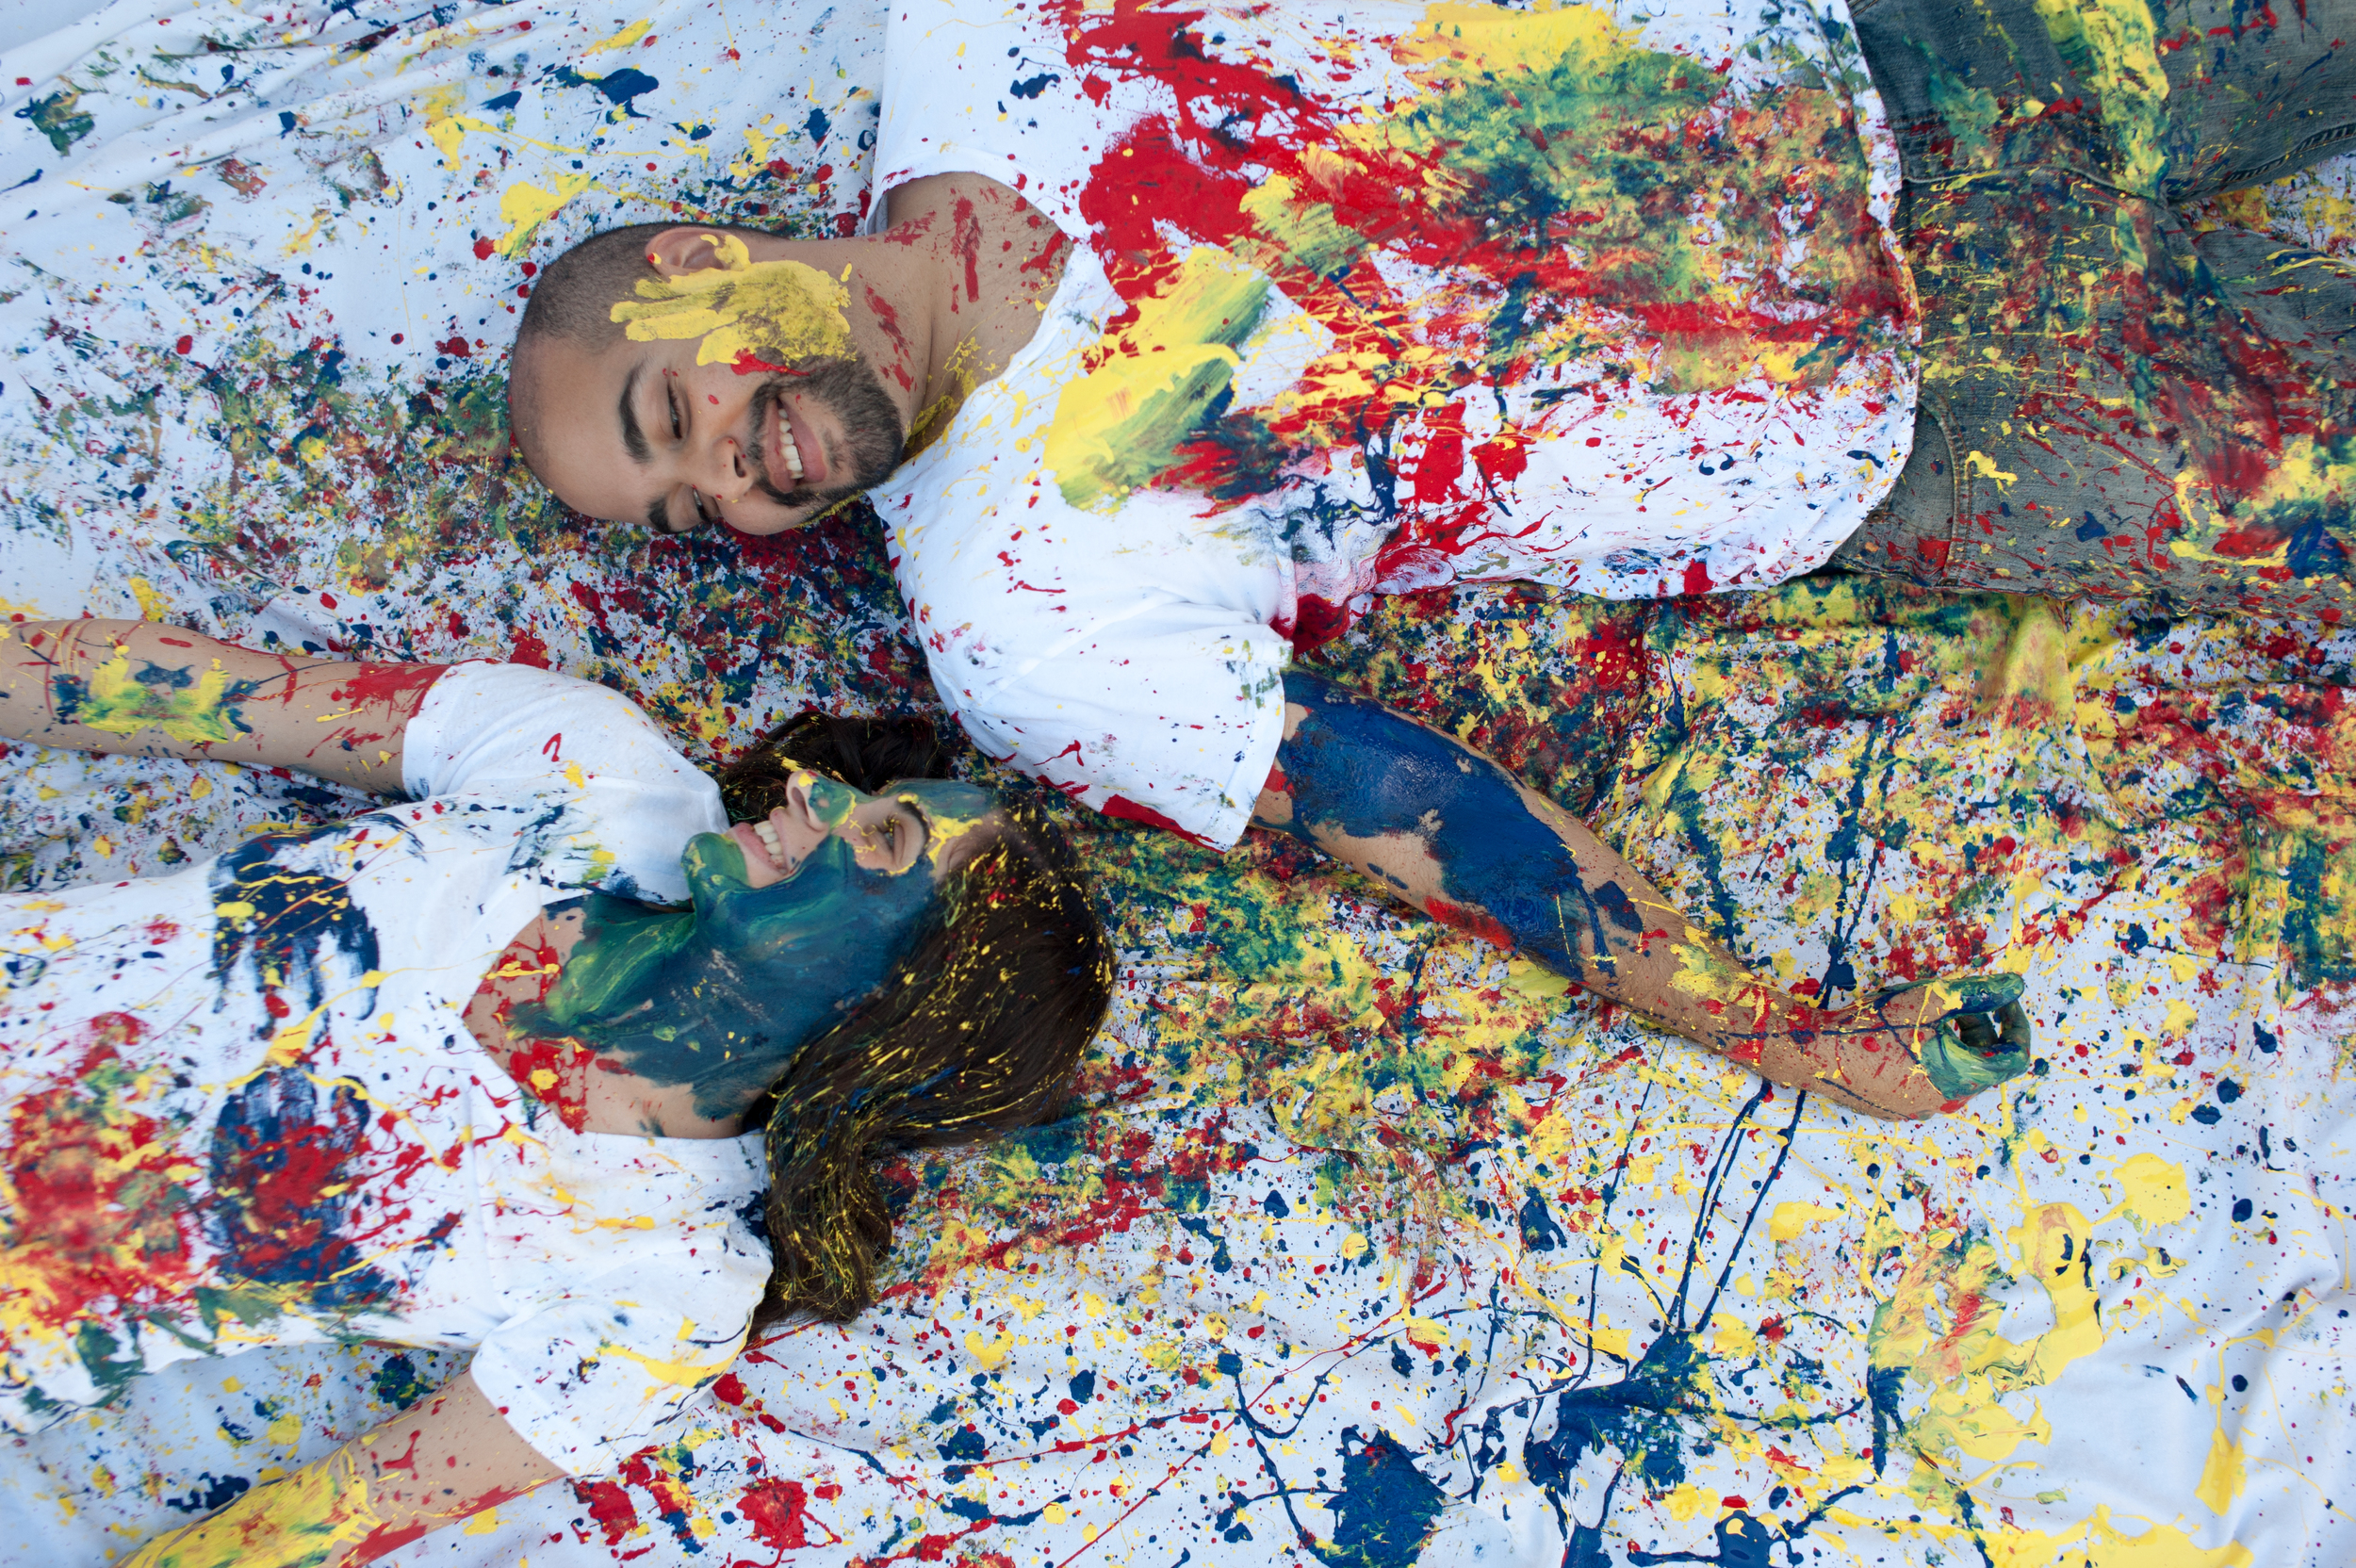 Paint War Engagement Session by Mantas Kubilinskas-16.jpg